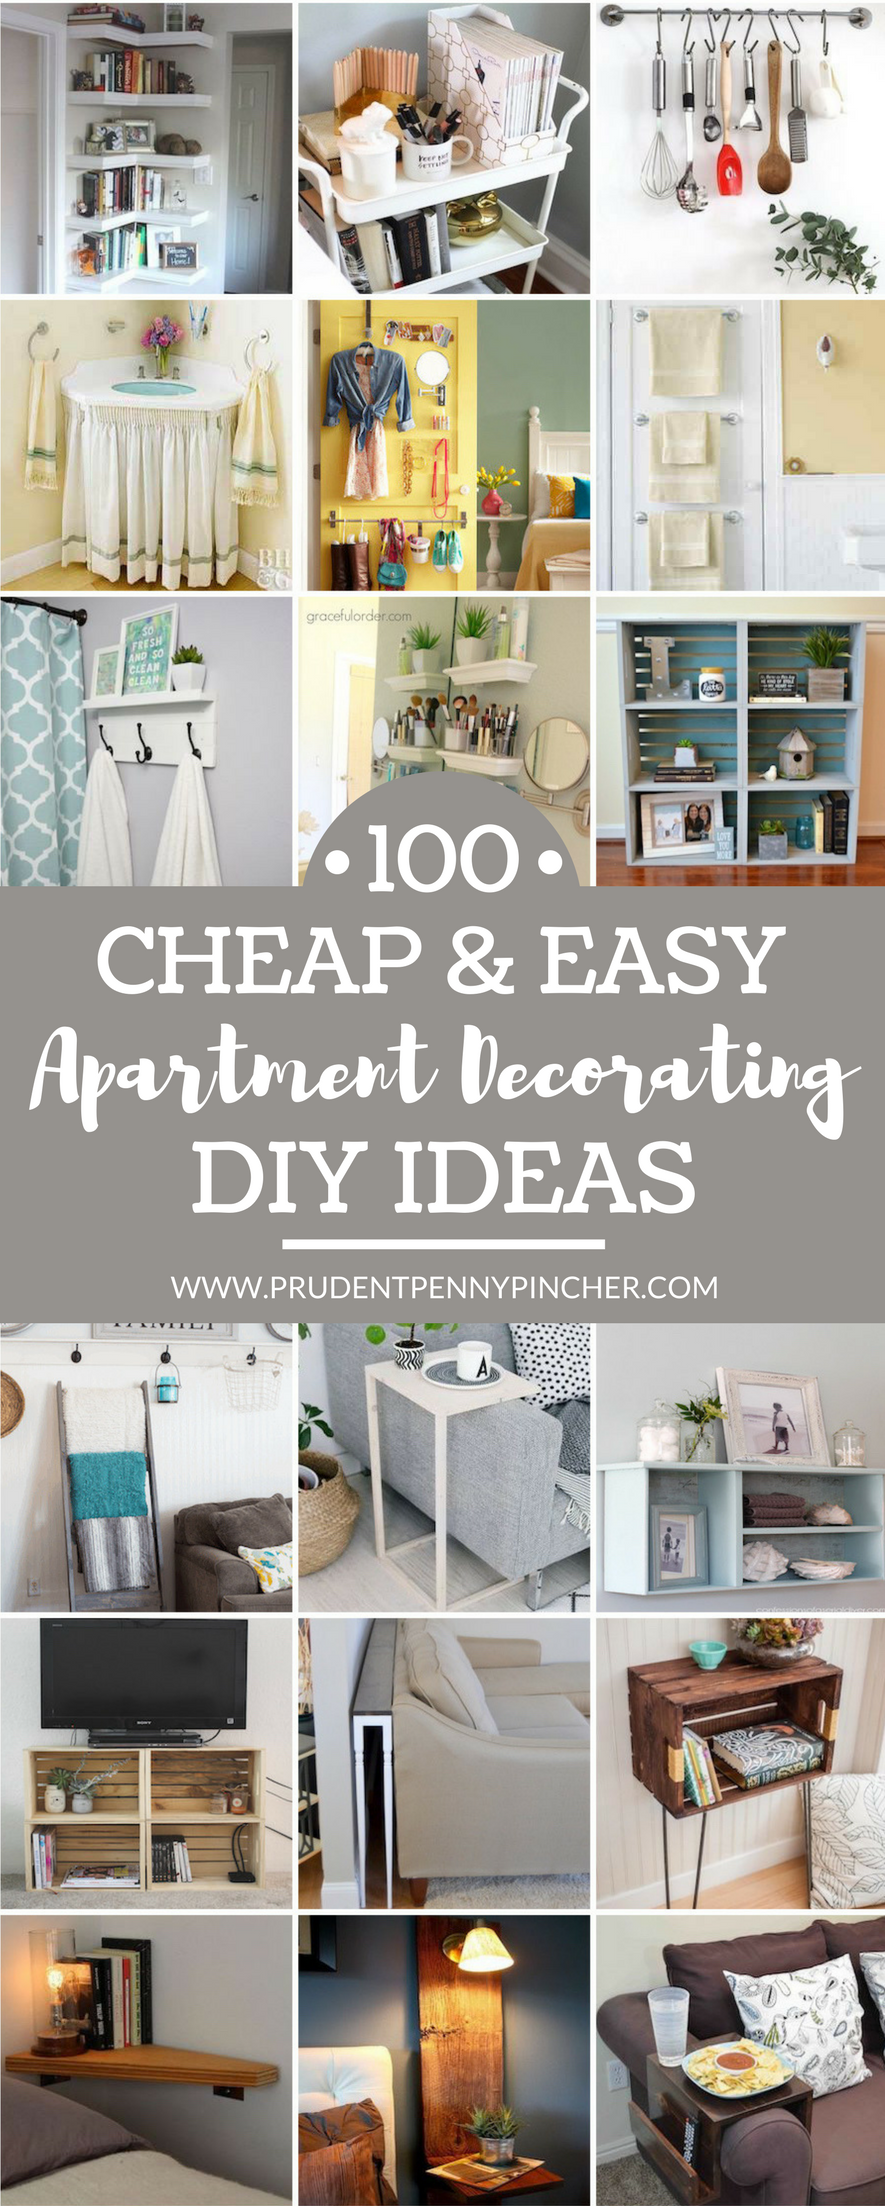 100 Cheap and Easy DIY Apartment Decorating Ideas ... on Apartment Decor Ideas On A Budget  id=64318